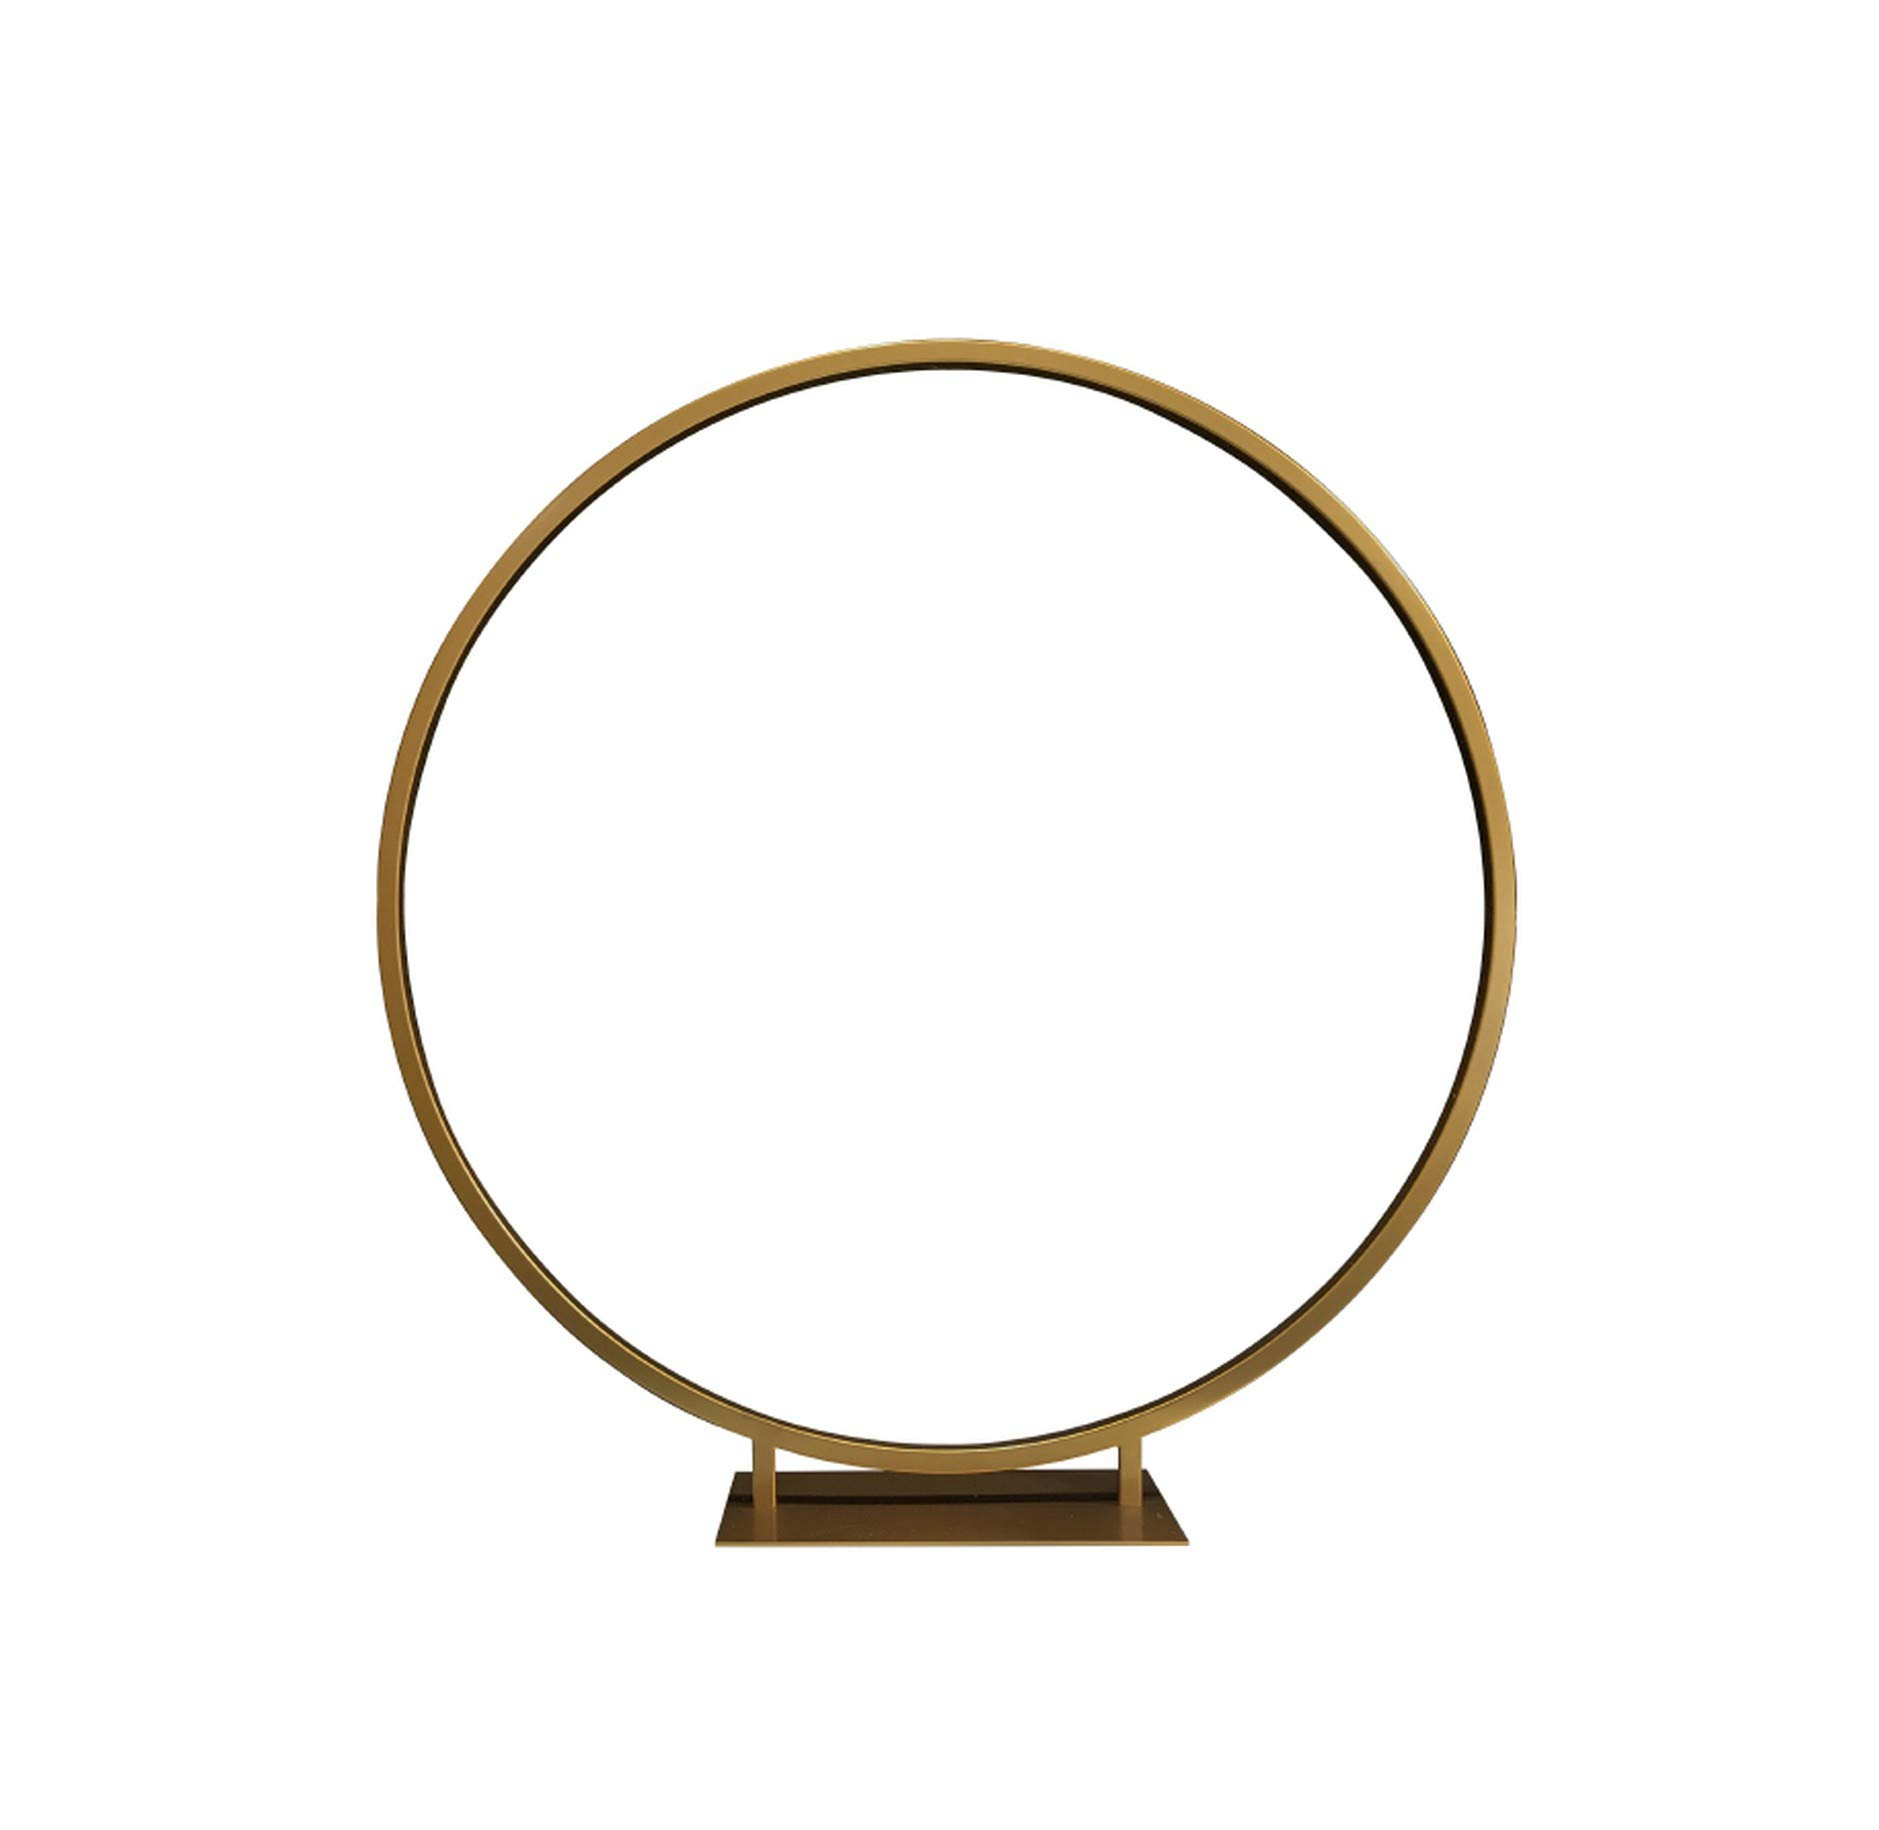 NA Romantic Wedding Flower Arch Gold Metal Stand 10Pcs/Lot for Wedding Centerpiece Decoration 24Inches Diameter,Gold by NA